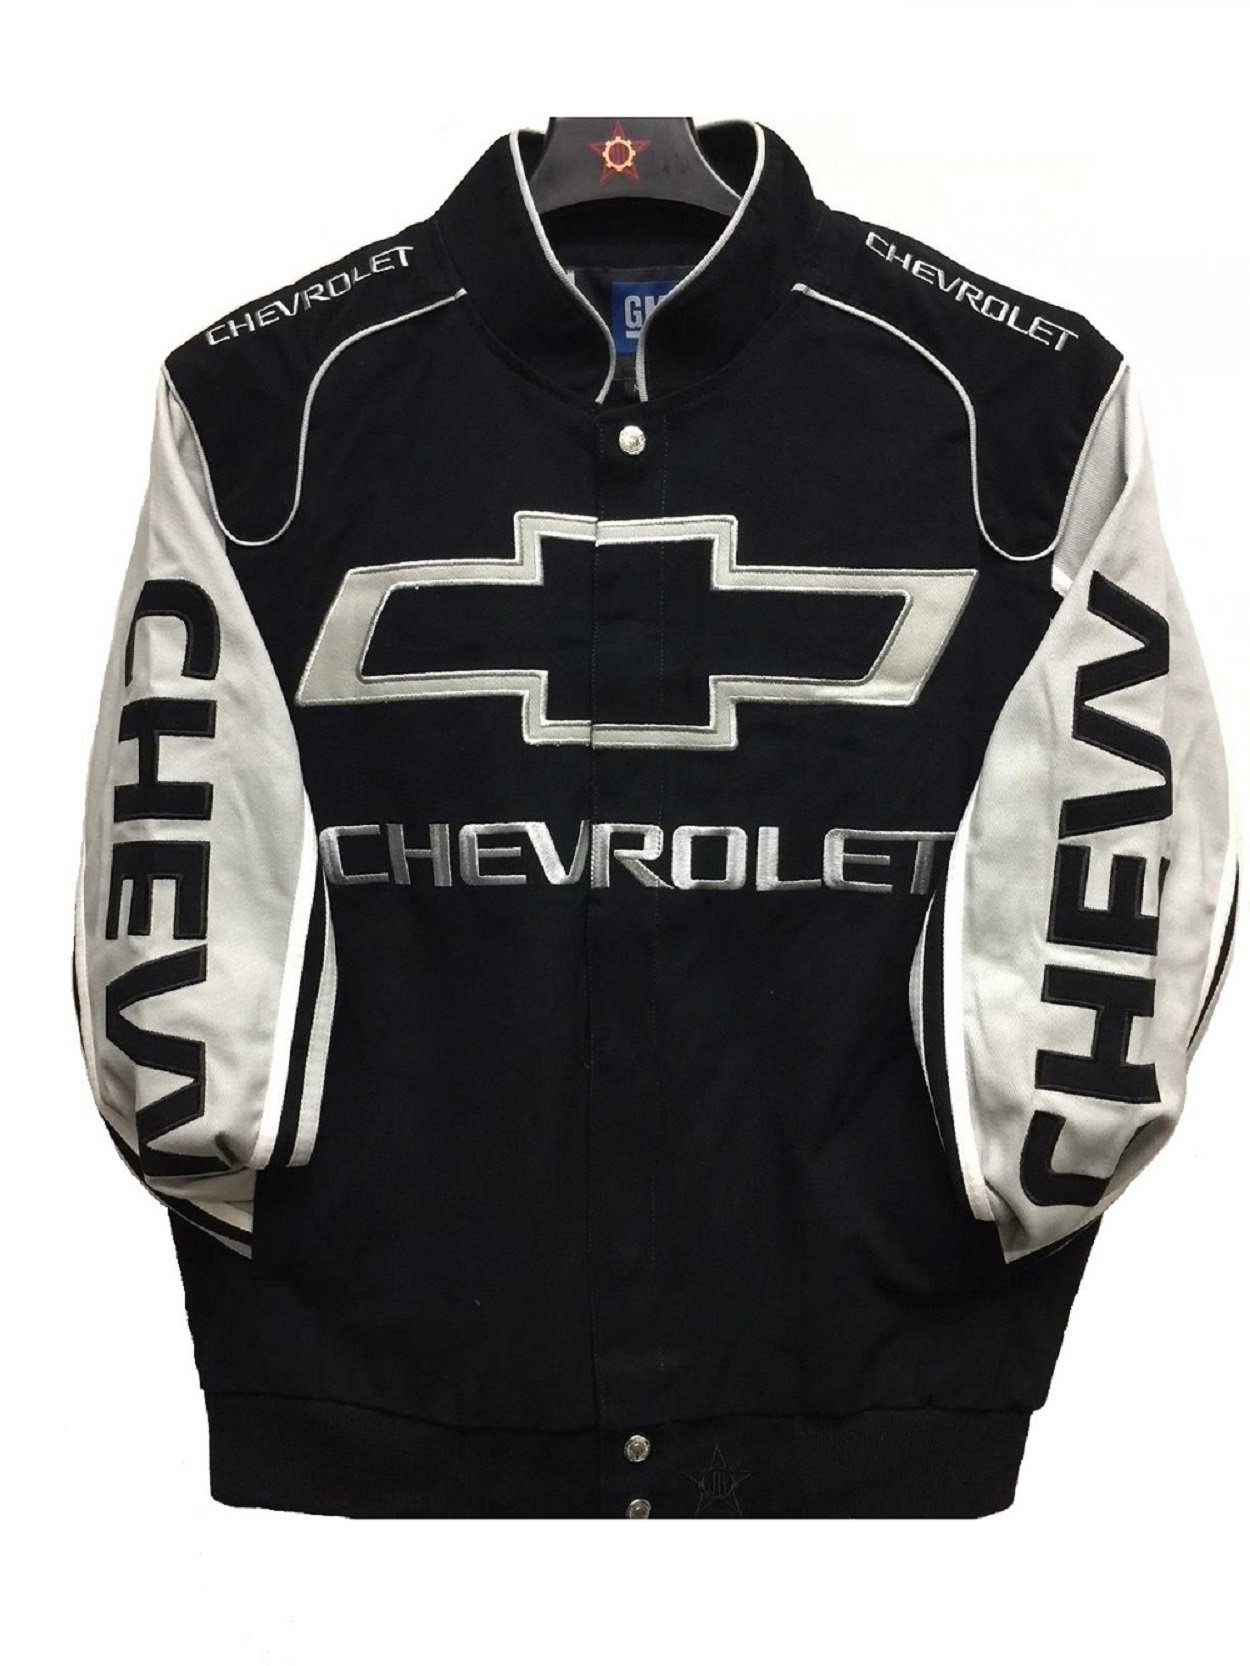 2017 Chevy Racing Cotton Jacket Jh Design Size Medium